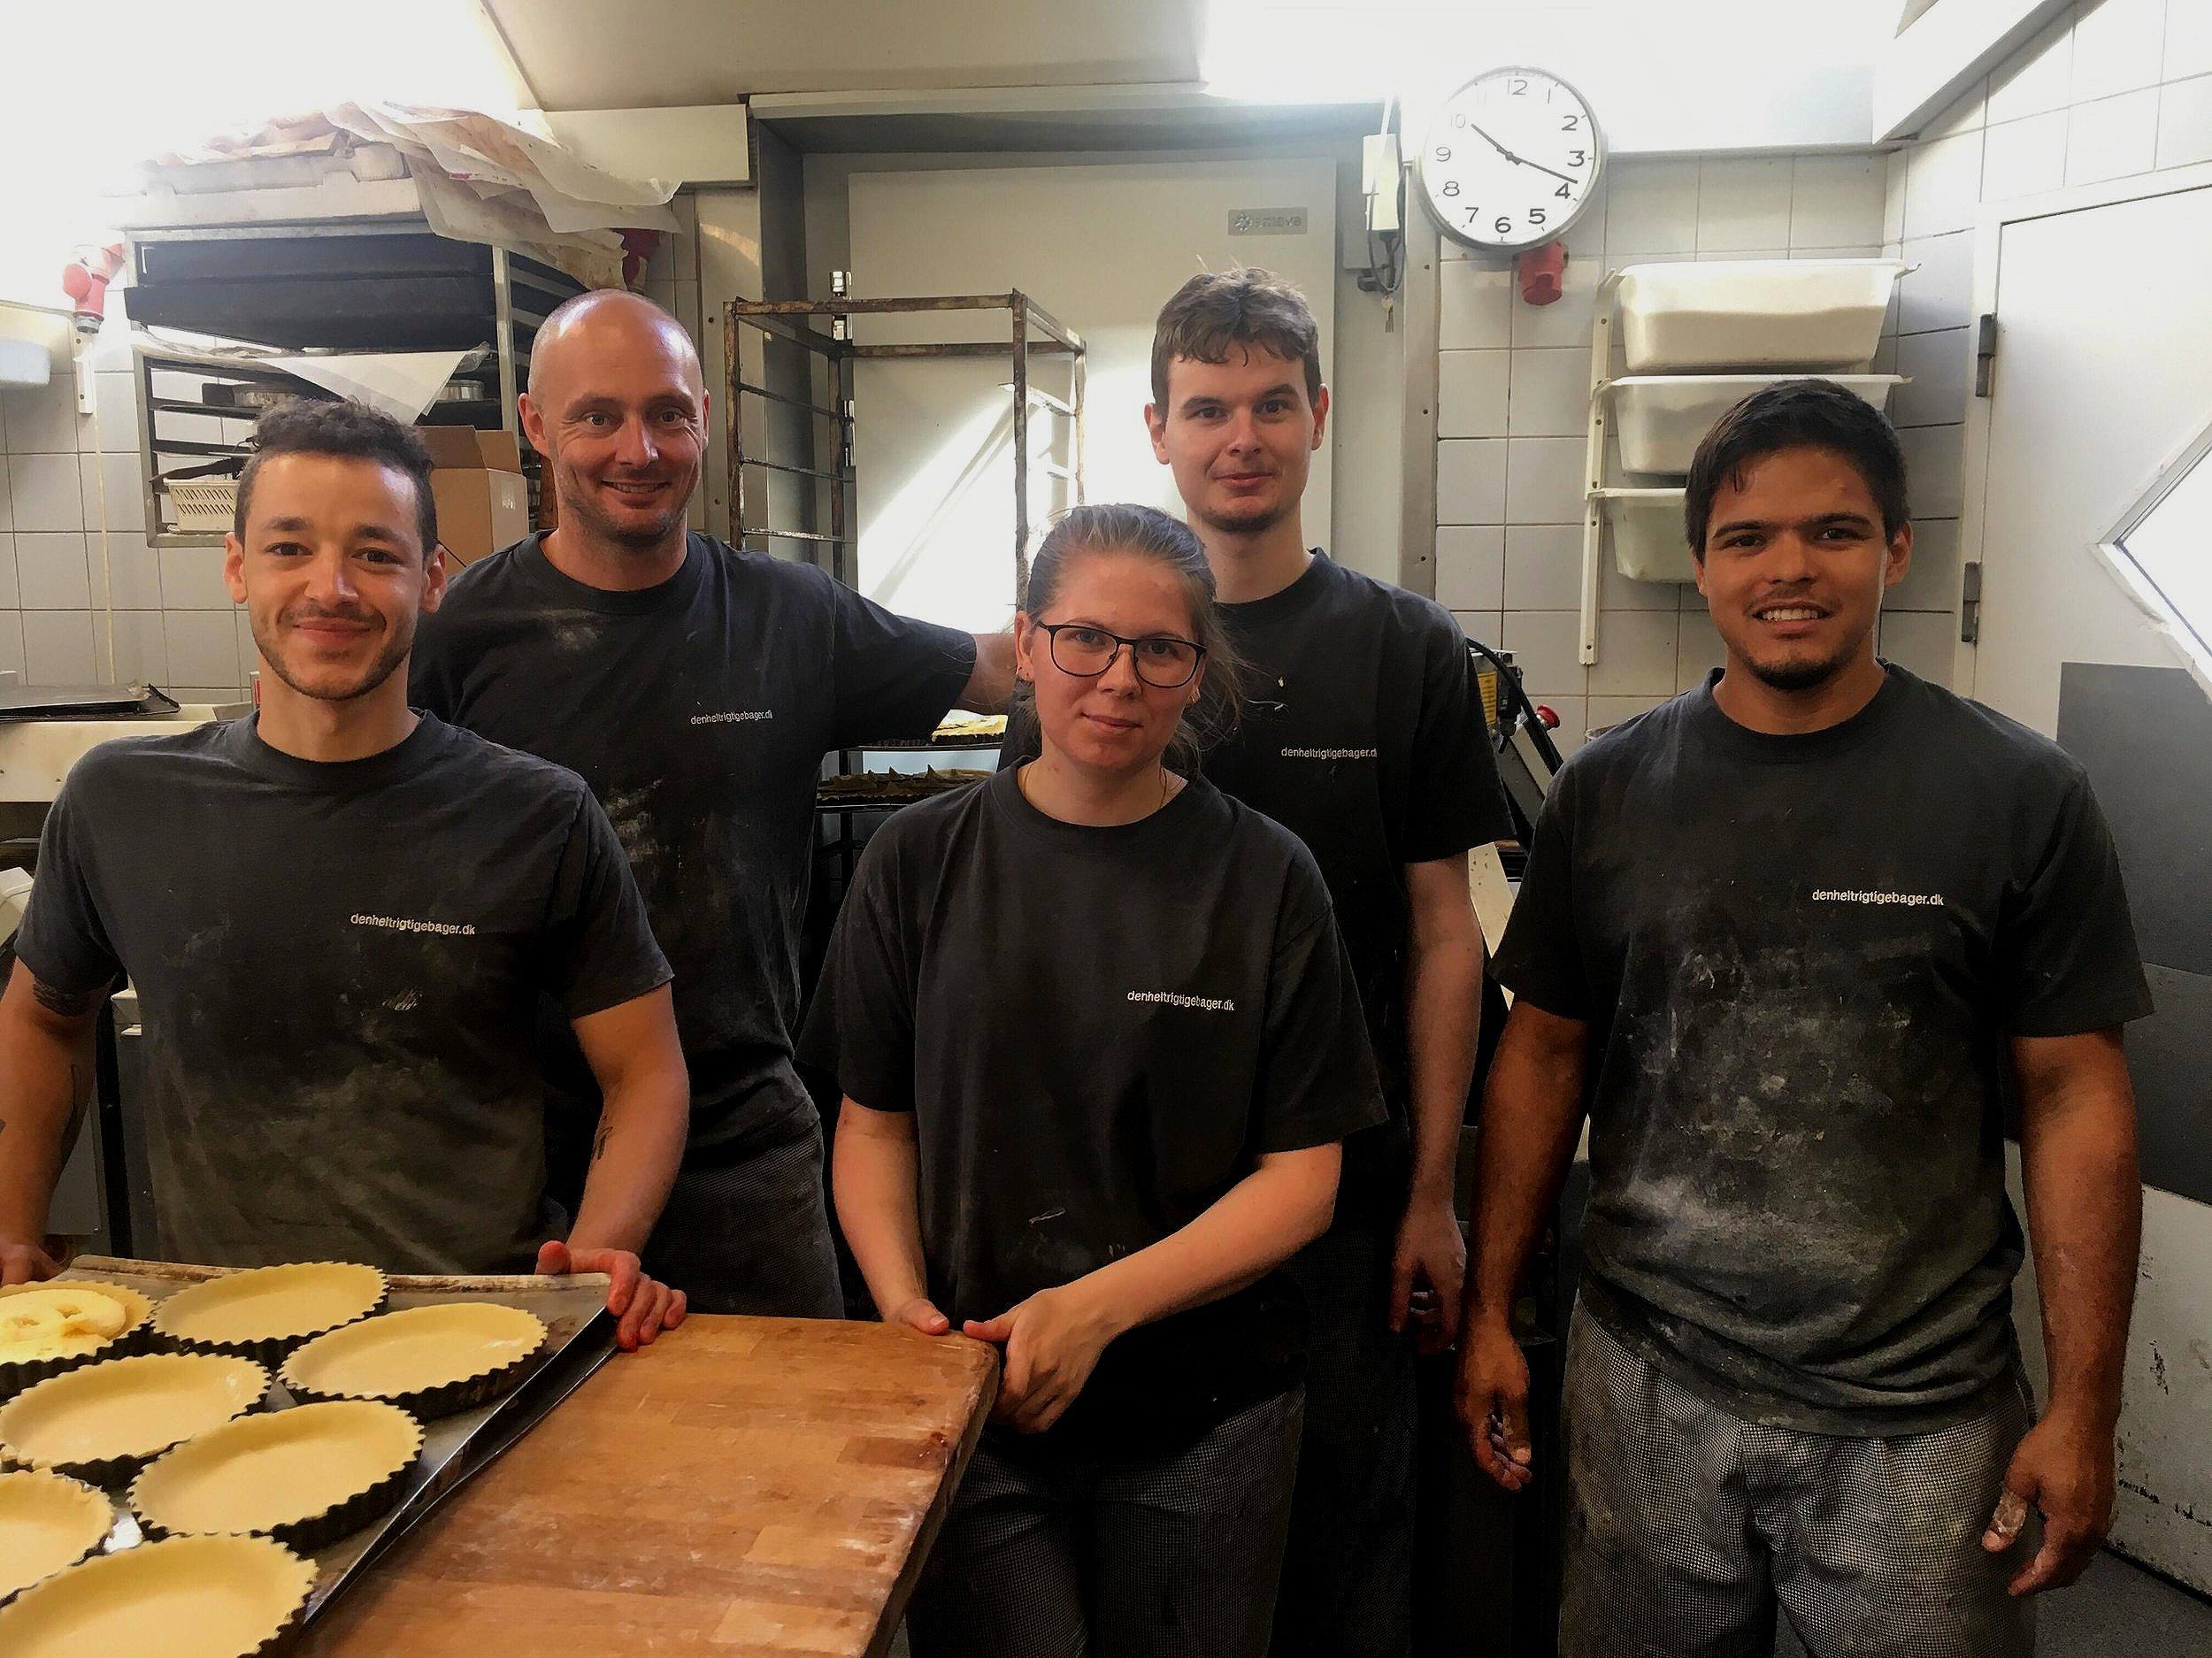 Danny far left with the bakery team at Den Helt Rigtige Bager